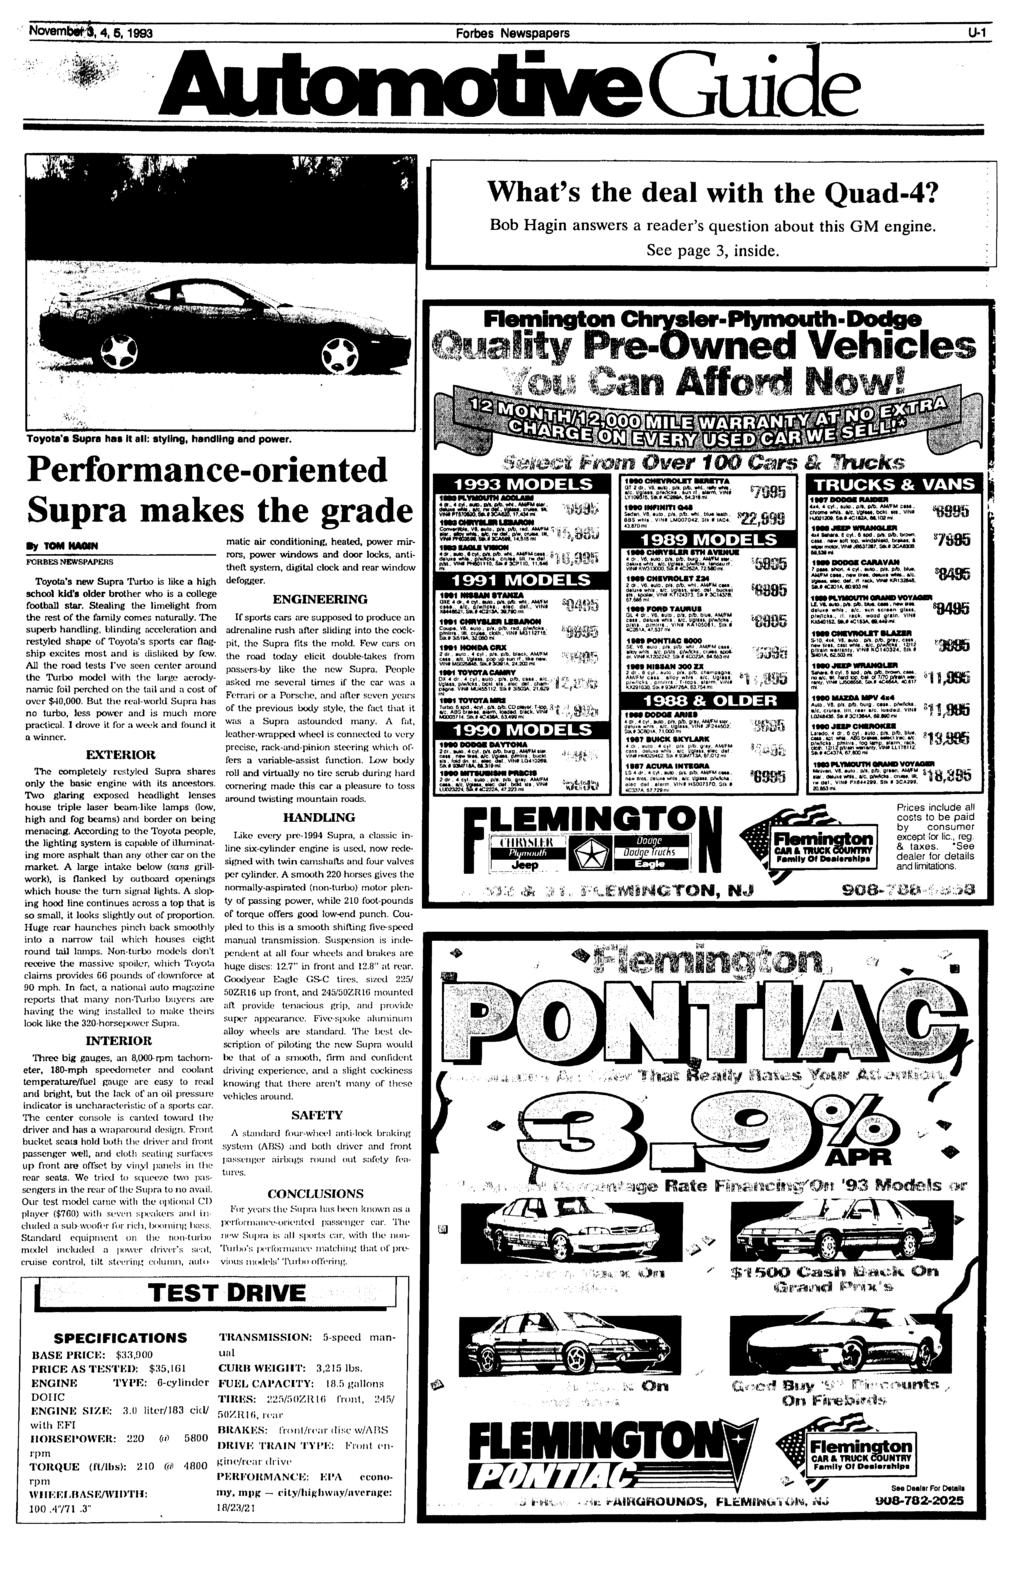 Novembef^, 4,5,1993 Forbes Newspapers U-1 Automotive Guide What's the deal with the Quad-4? Bob Hagin answers a reader's question about this GM engine. See page 3, inside.